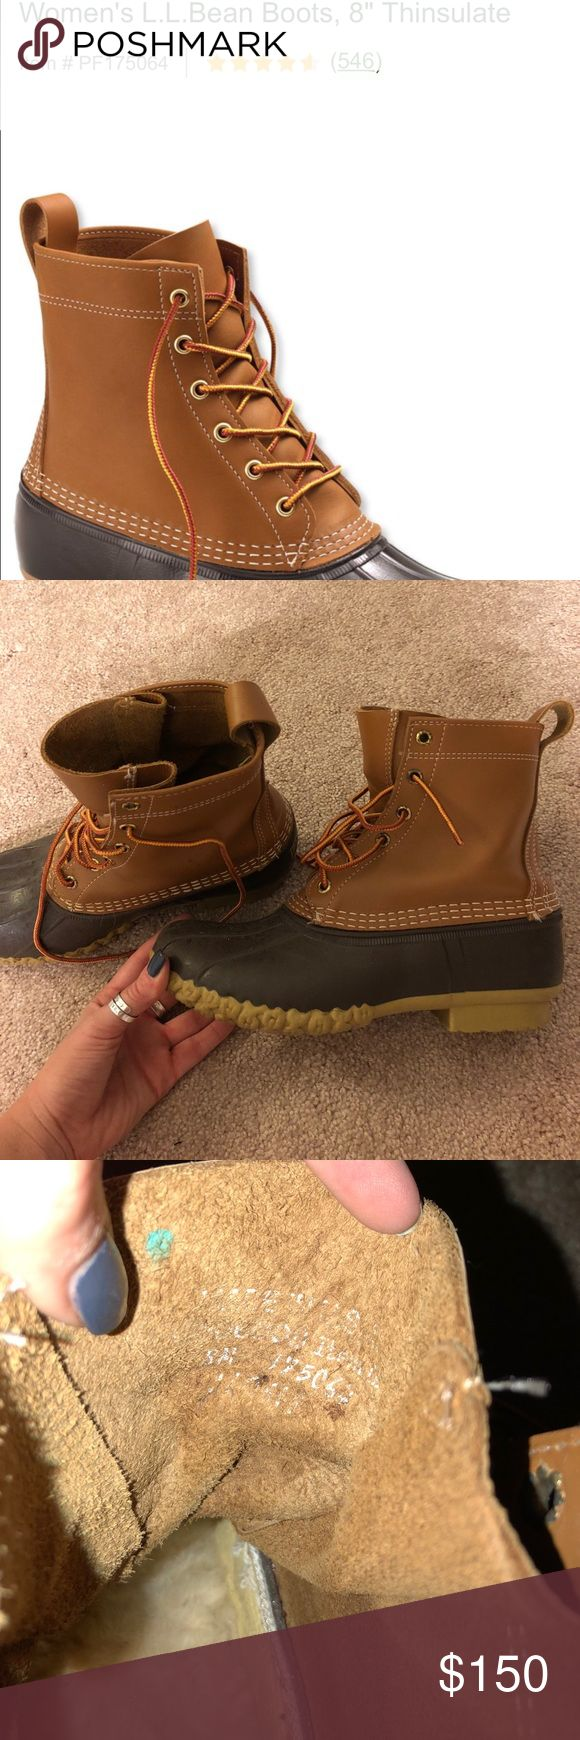 L.L. bean boots women's 8 - 8 inch Worn literally less than 5 times. These are the thinsulate boots. I️ took out the normal soles and put ugg wool inserts in. I️ don't even think I️ wore them after I️ swapped them out. The only signs of wear are shown in the last pic: the hardware for the laces, the paint has chipped off a little L.L. Bean Shoes Winter & Rain Boots